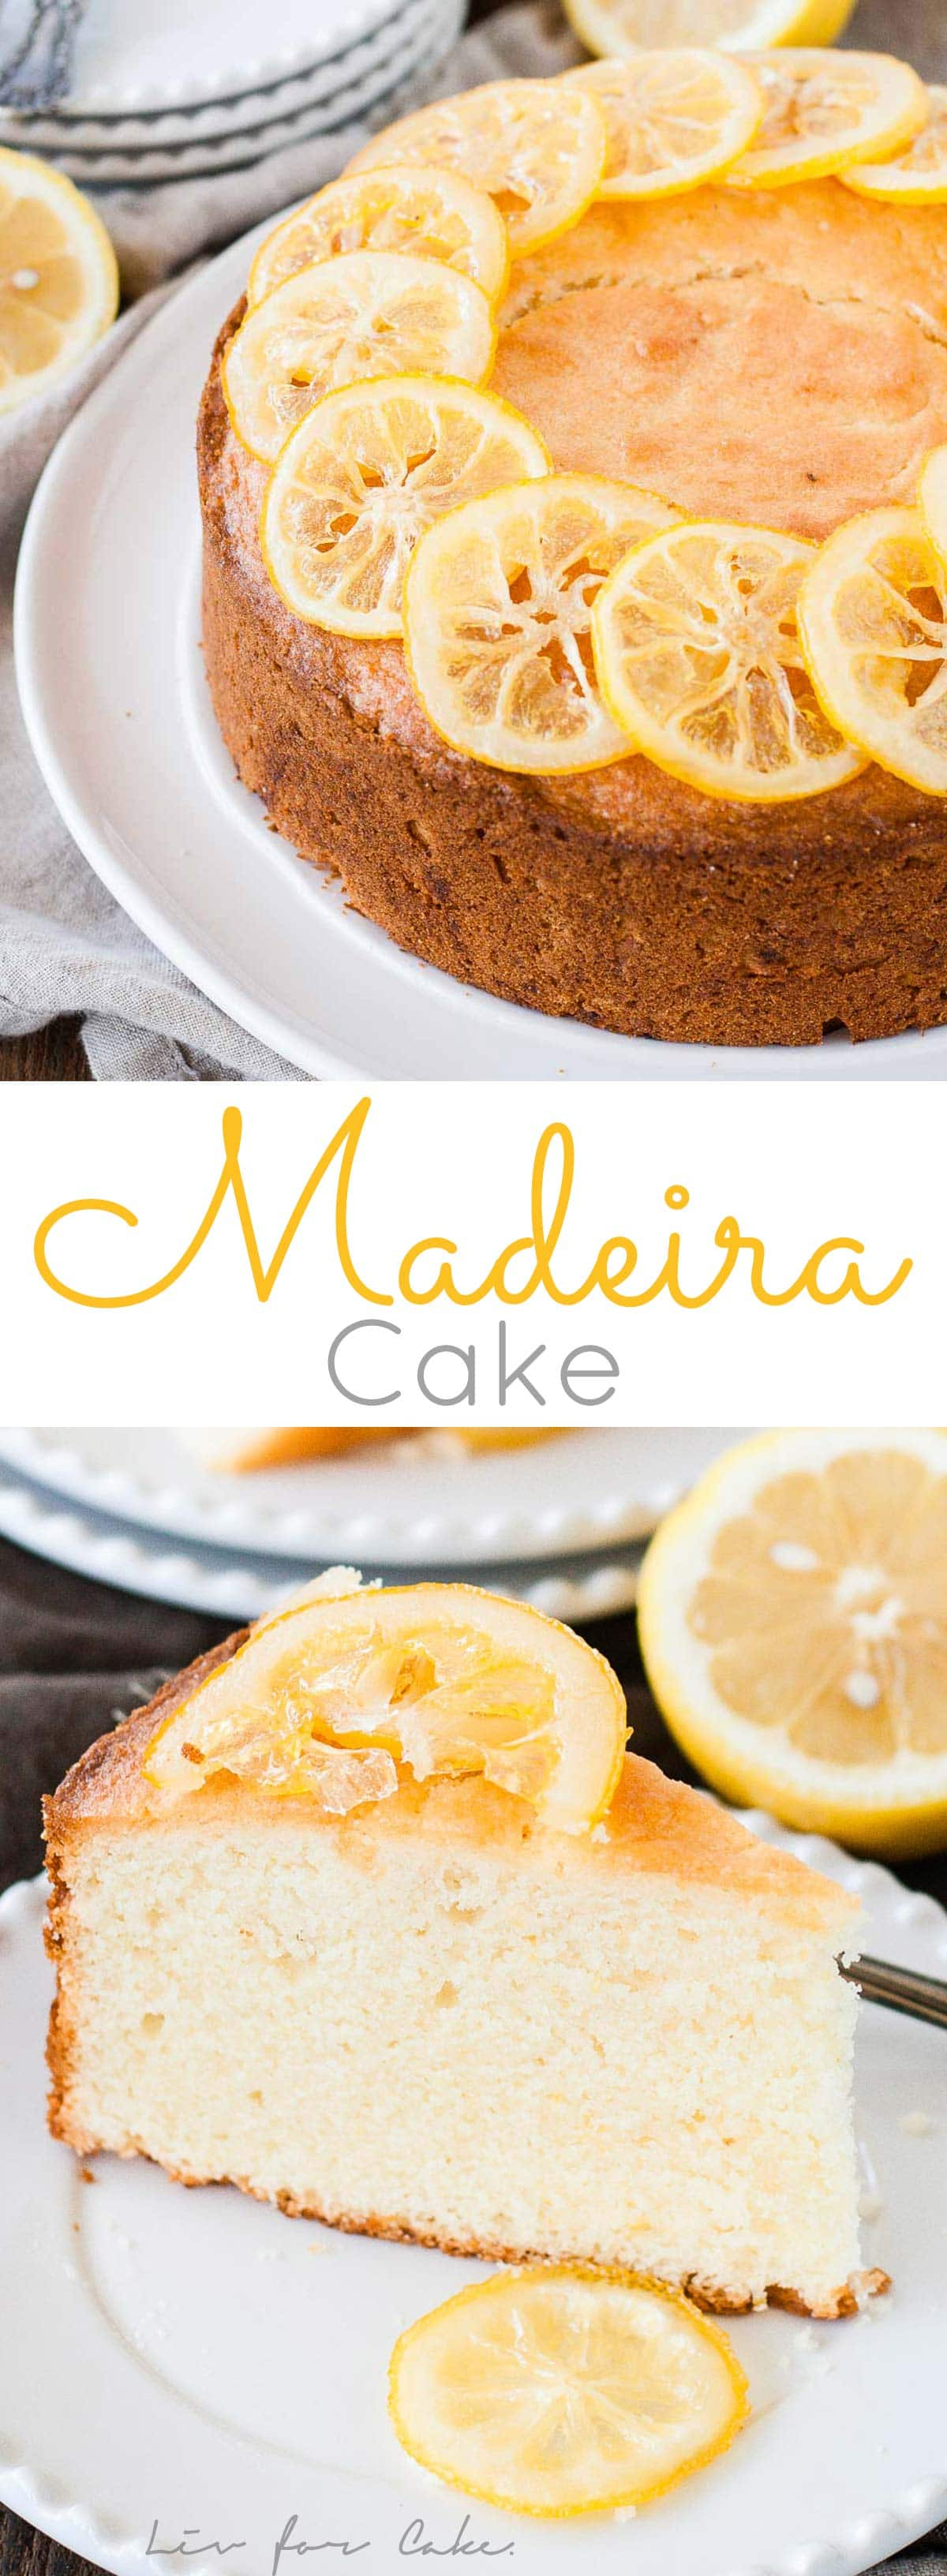 This classic English Madeira Cake is the easiest dessert you will ever make. Lightly flavoured with lemon and topped with candied lemon slices.   livforcake.com